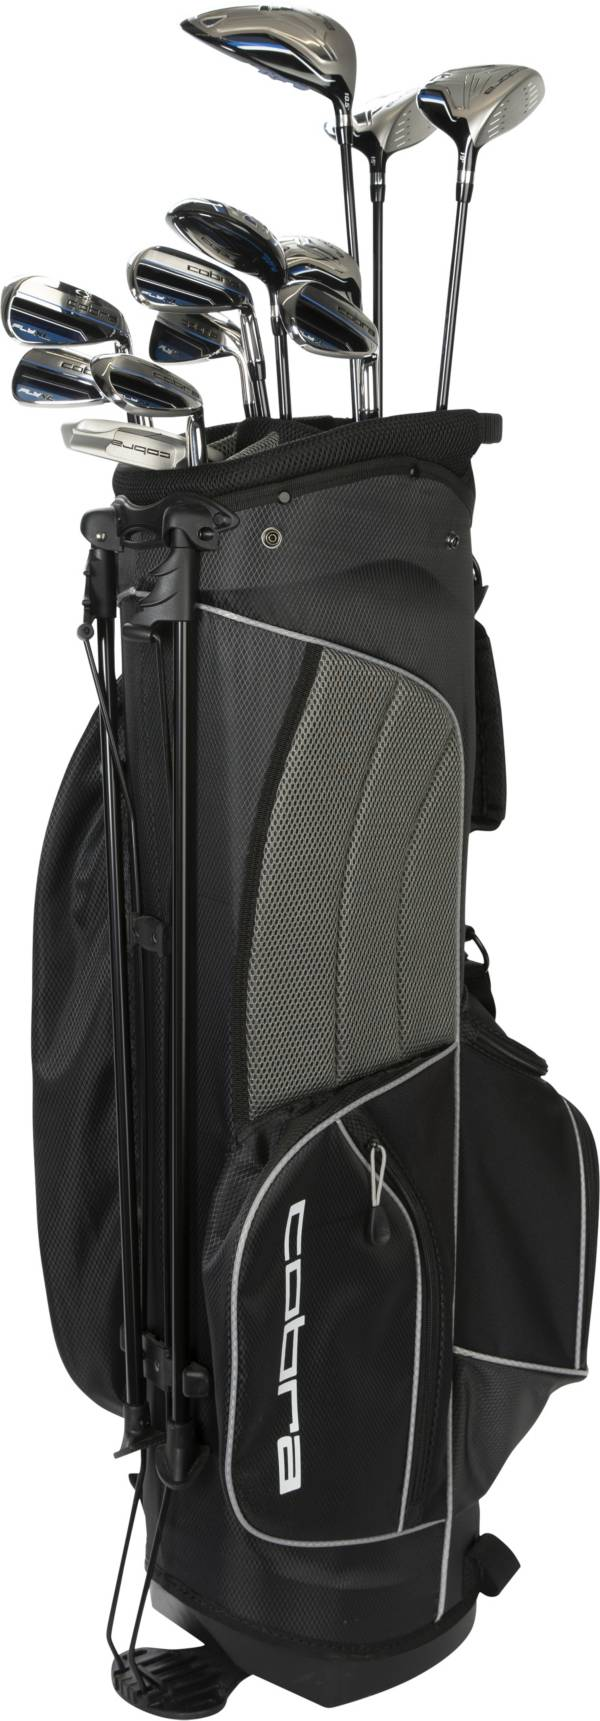 Cobra FLY-XL 13-Piece Complete Set with Stand Bag – (Graphite) product image